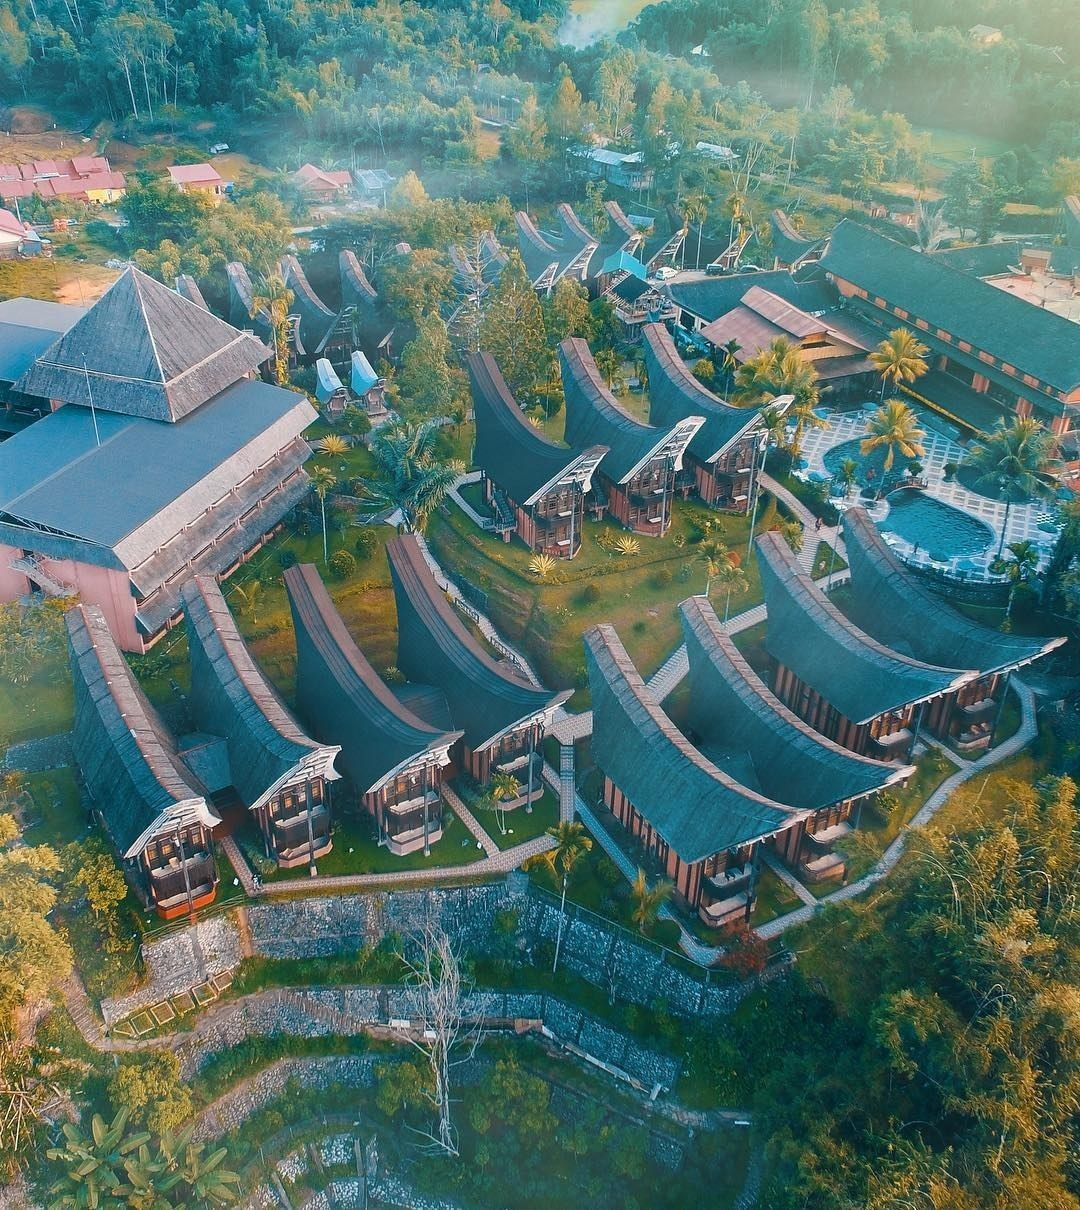 A Beautiful Aerial View Of Toraja Heritage Hotel In South Sulawesi